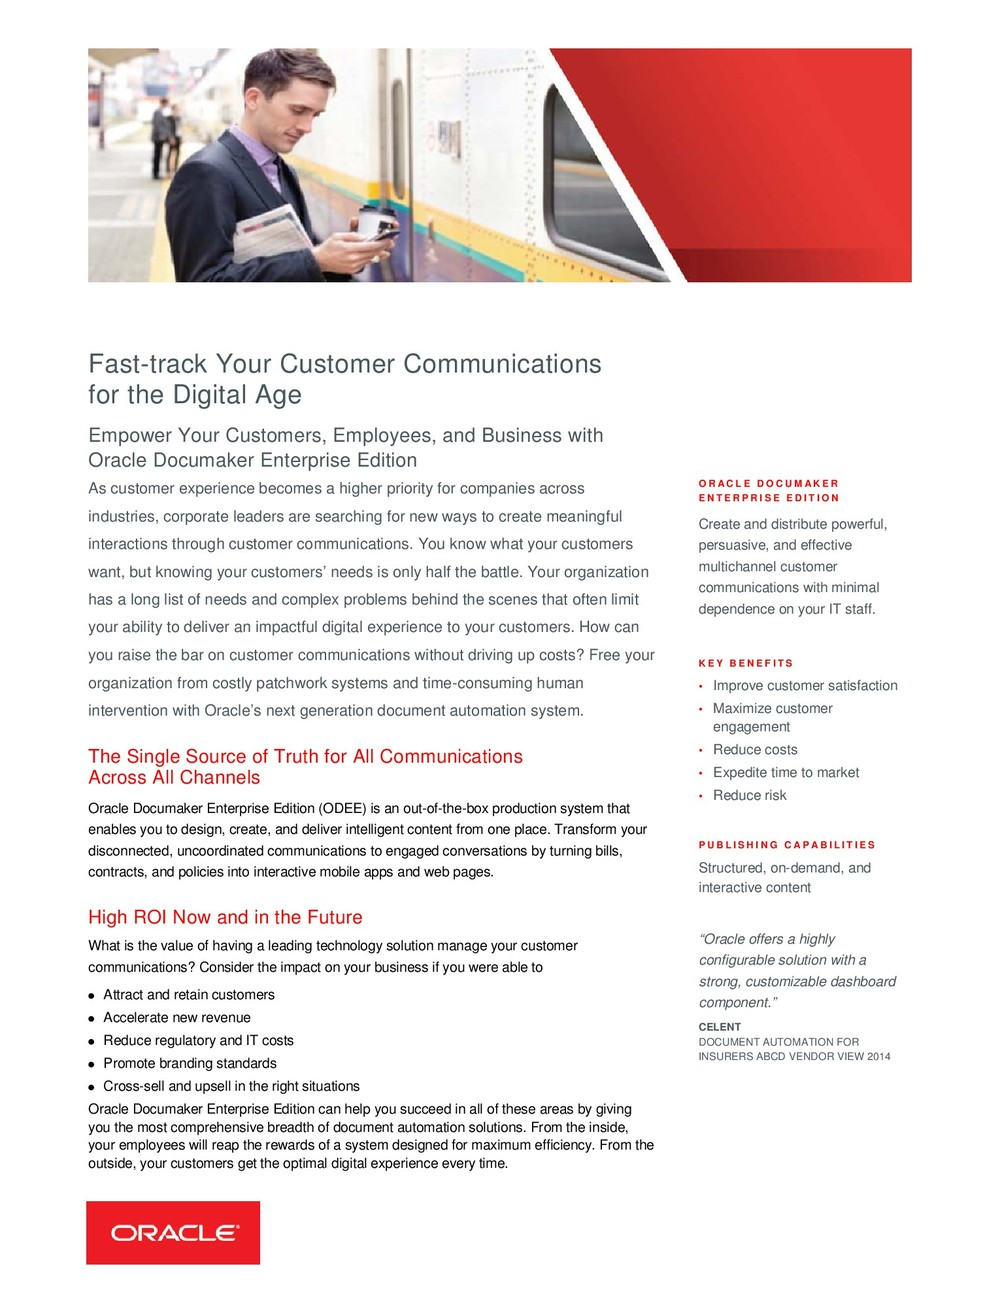 Fast-track Your Customer Communications for the Digital Age